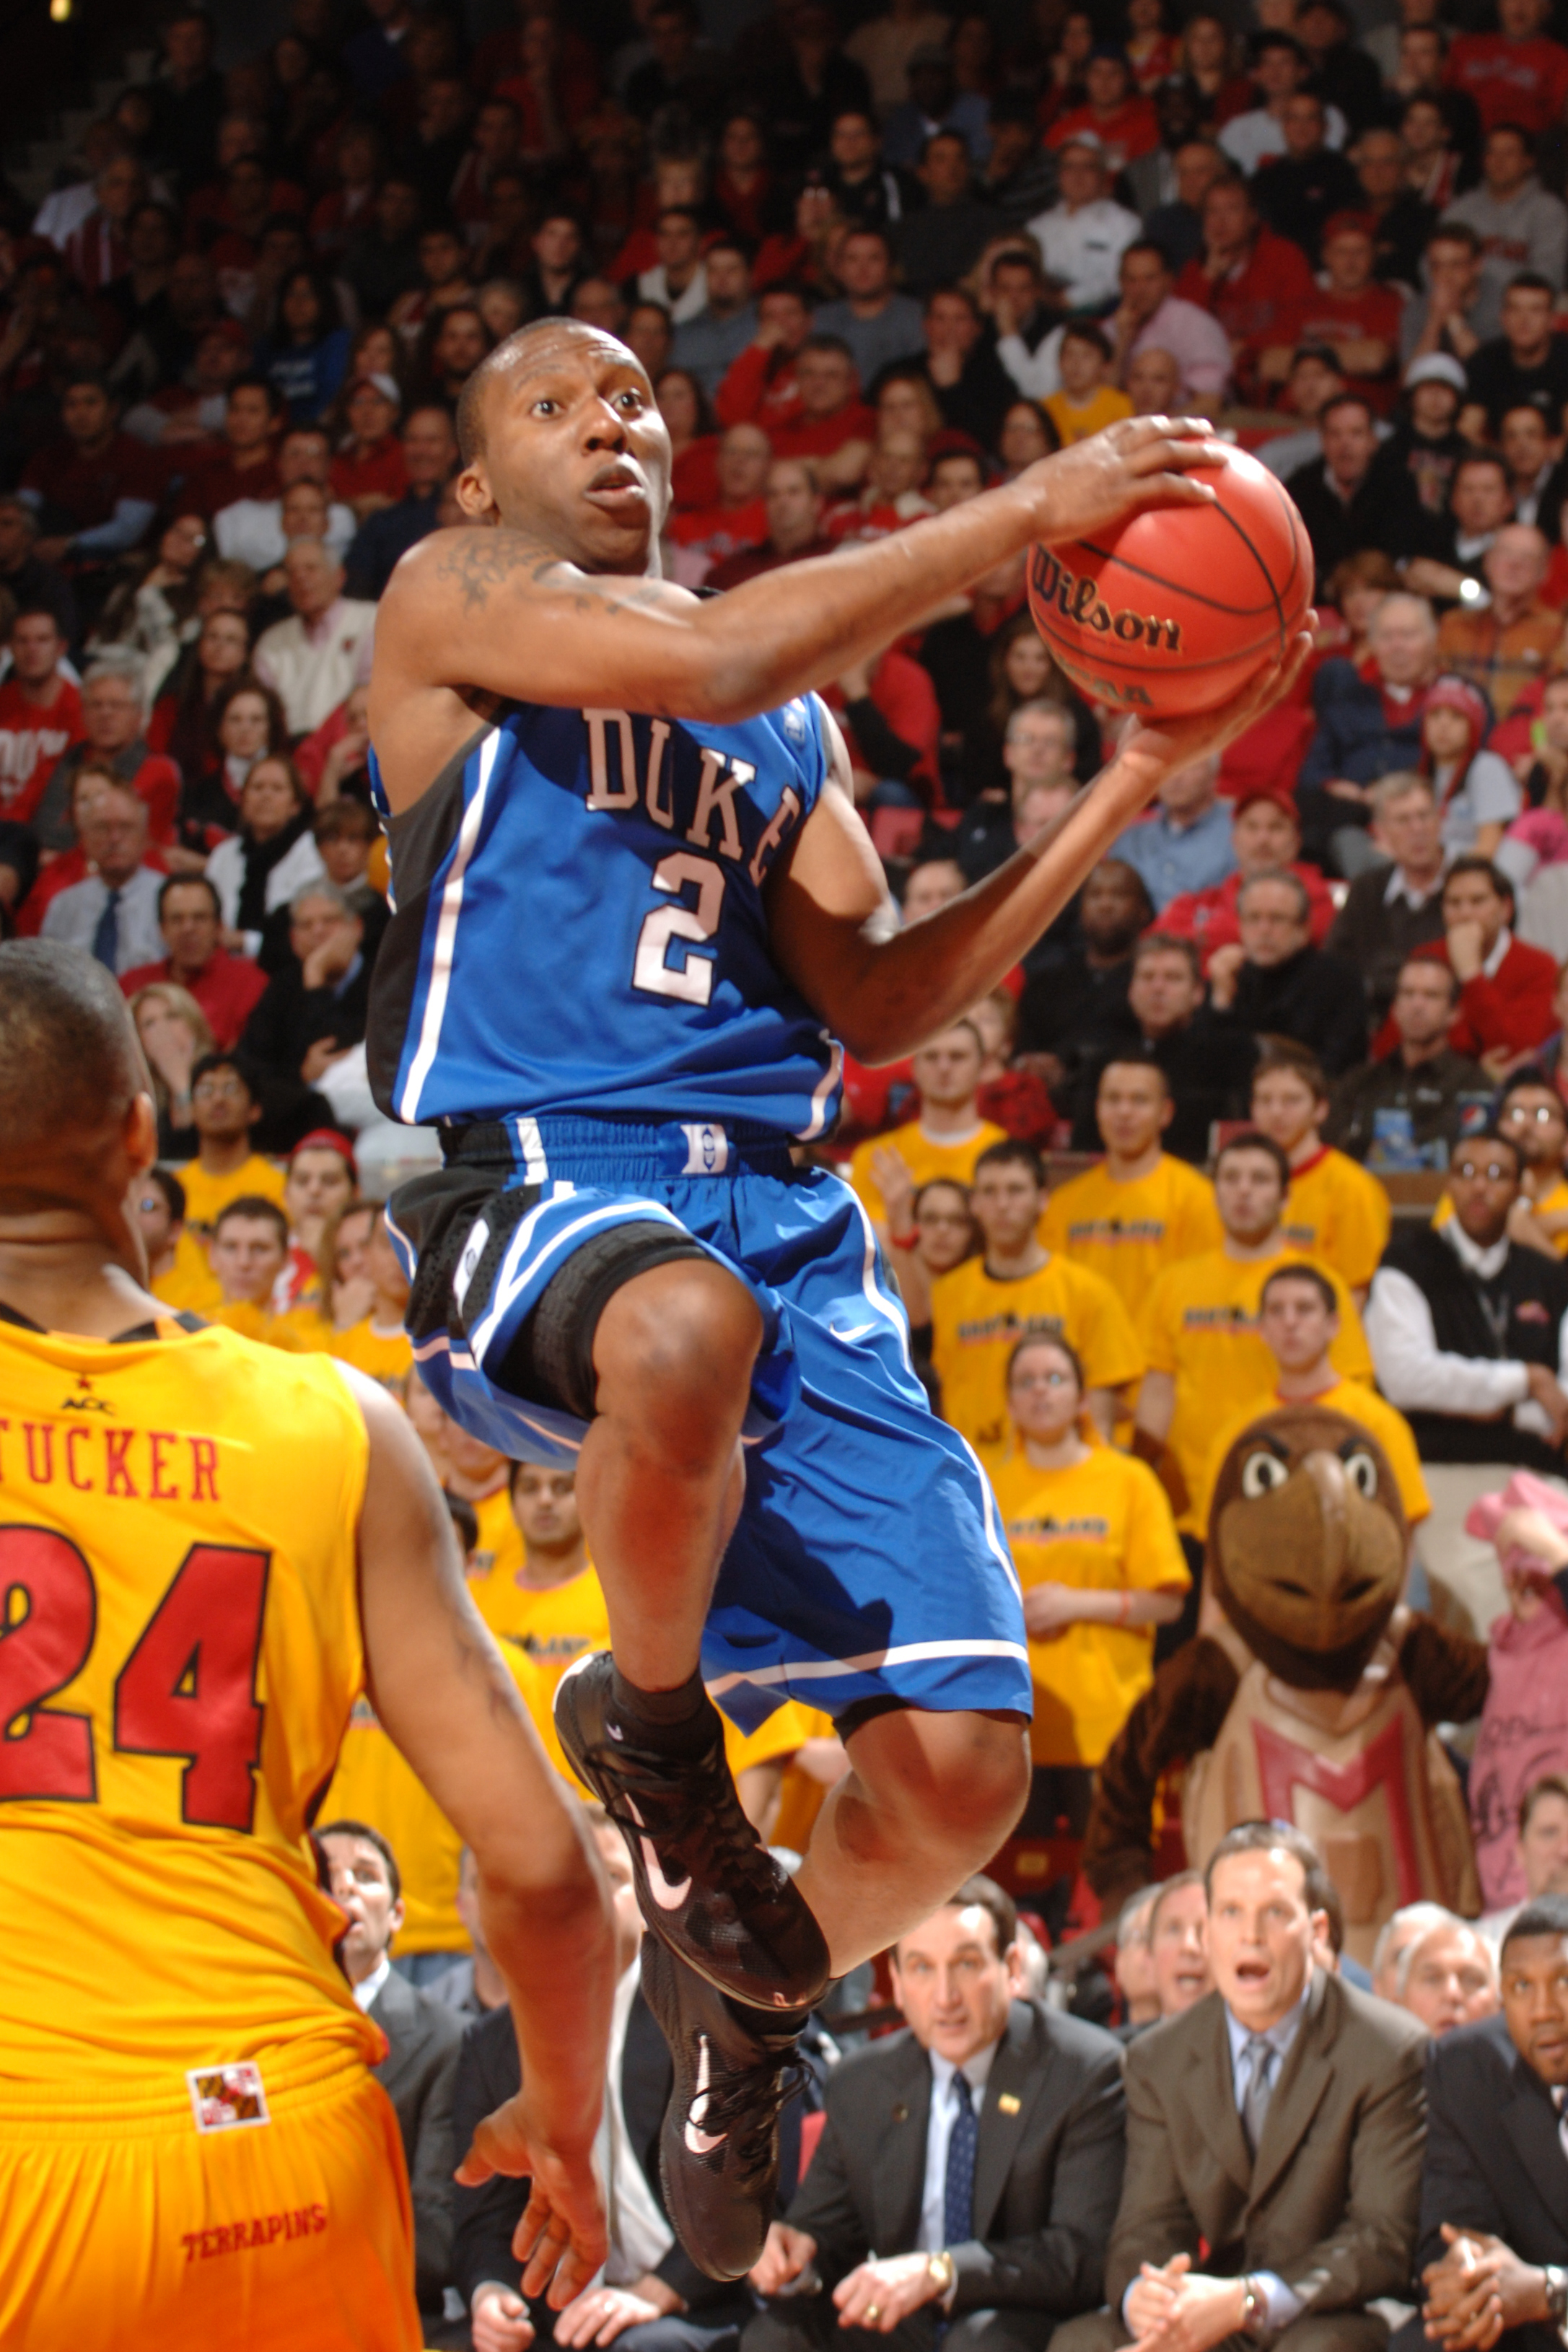 COLLEGE PARK, MD - FEBRUARY 2:  Nolan Smith #2 of the Duke Blue Devils drives to the basket during a college basketball game against the Maryland Terrapins on February 2, 2011 at the Comcast Arena in College Park, Maryland.  The Blue Devils won 80-62.  (P